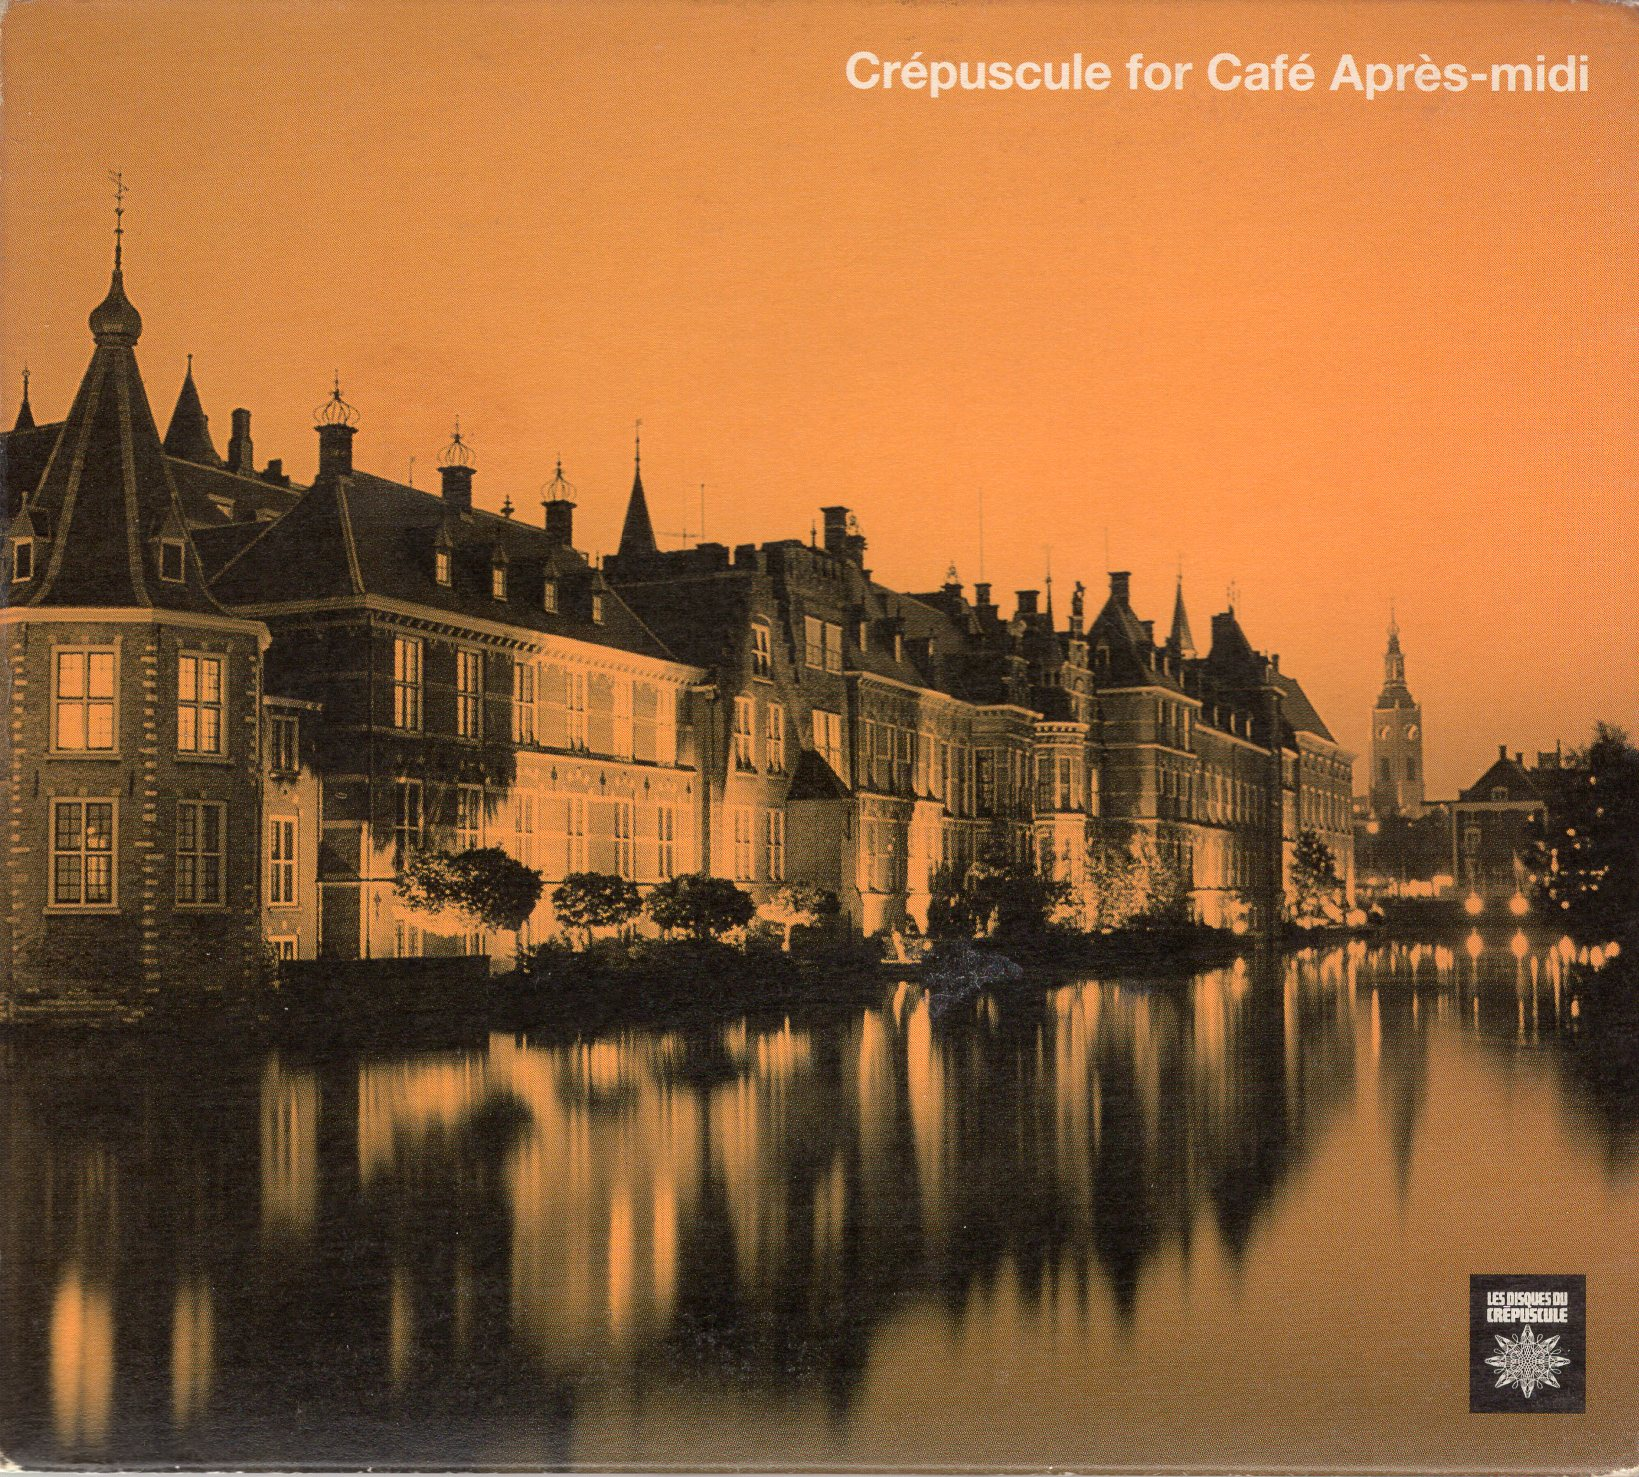 """Crepuscule for Cafe Apres-midi"""